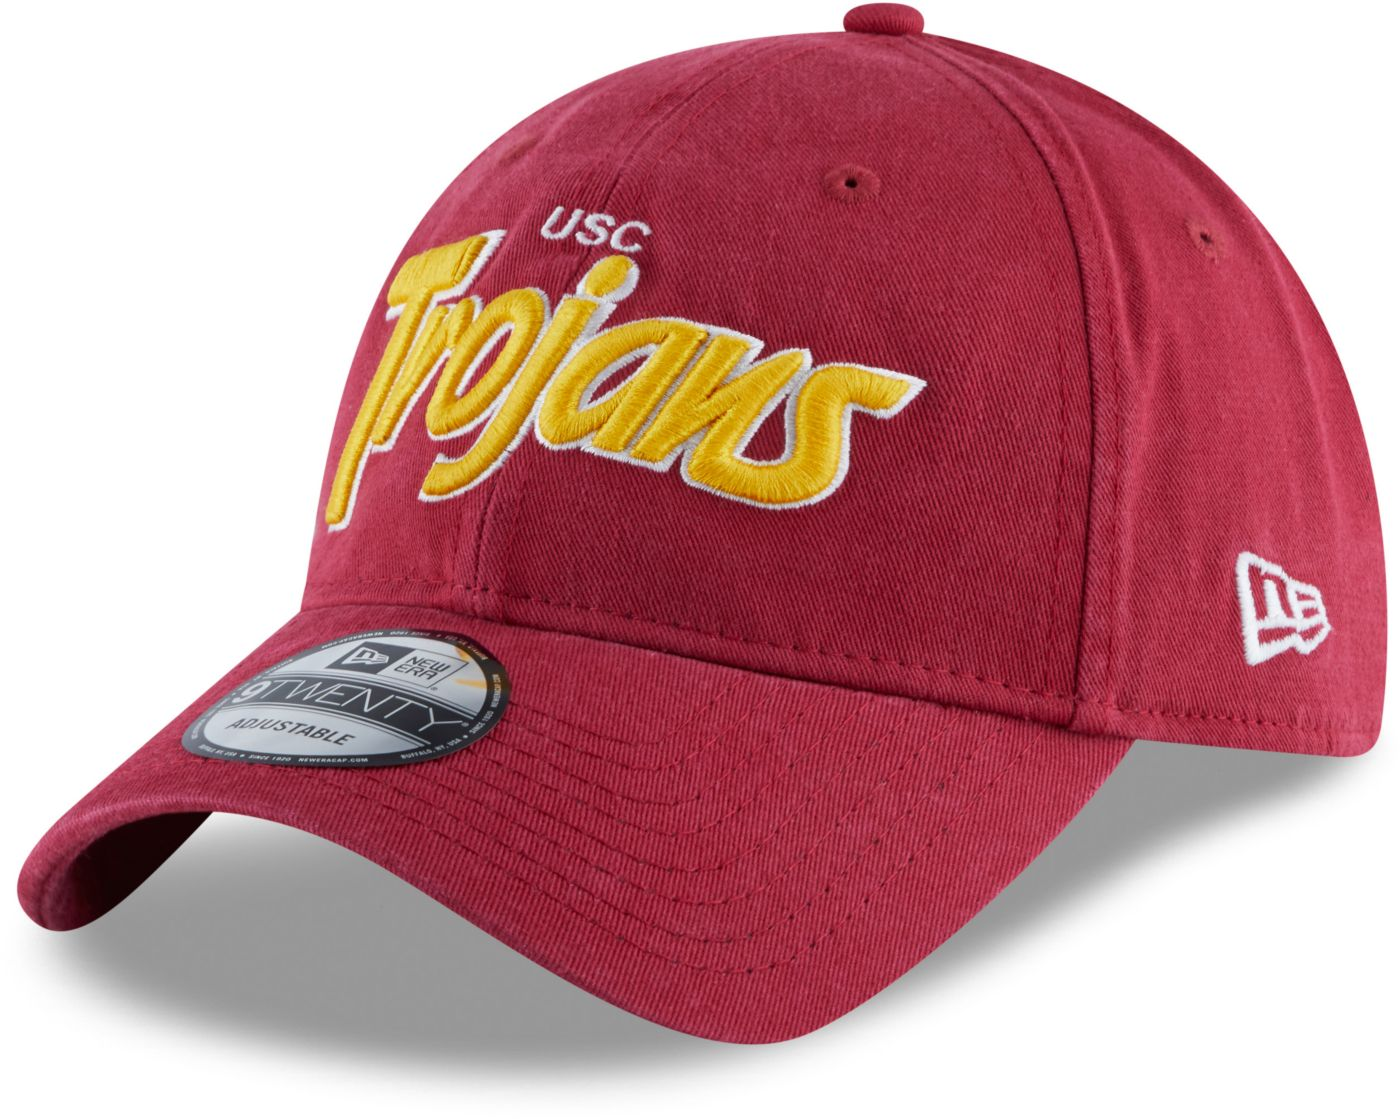 New Era Men's USC Trojans Cardinals Retro Script Adjustable Hat